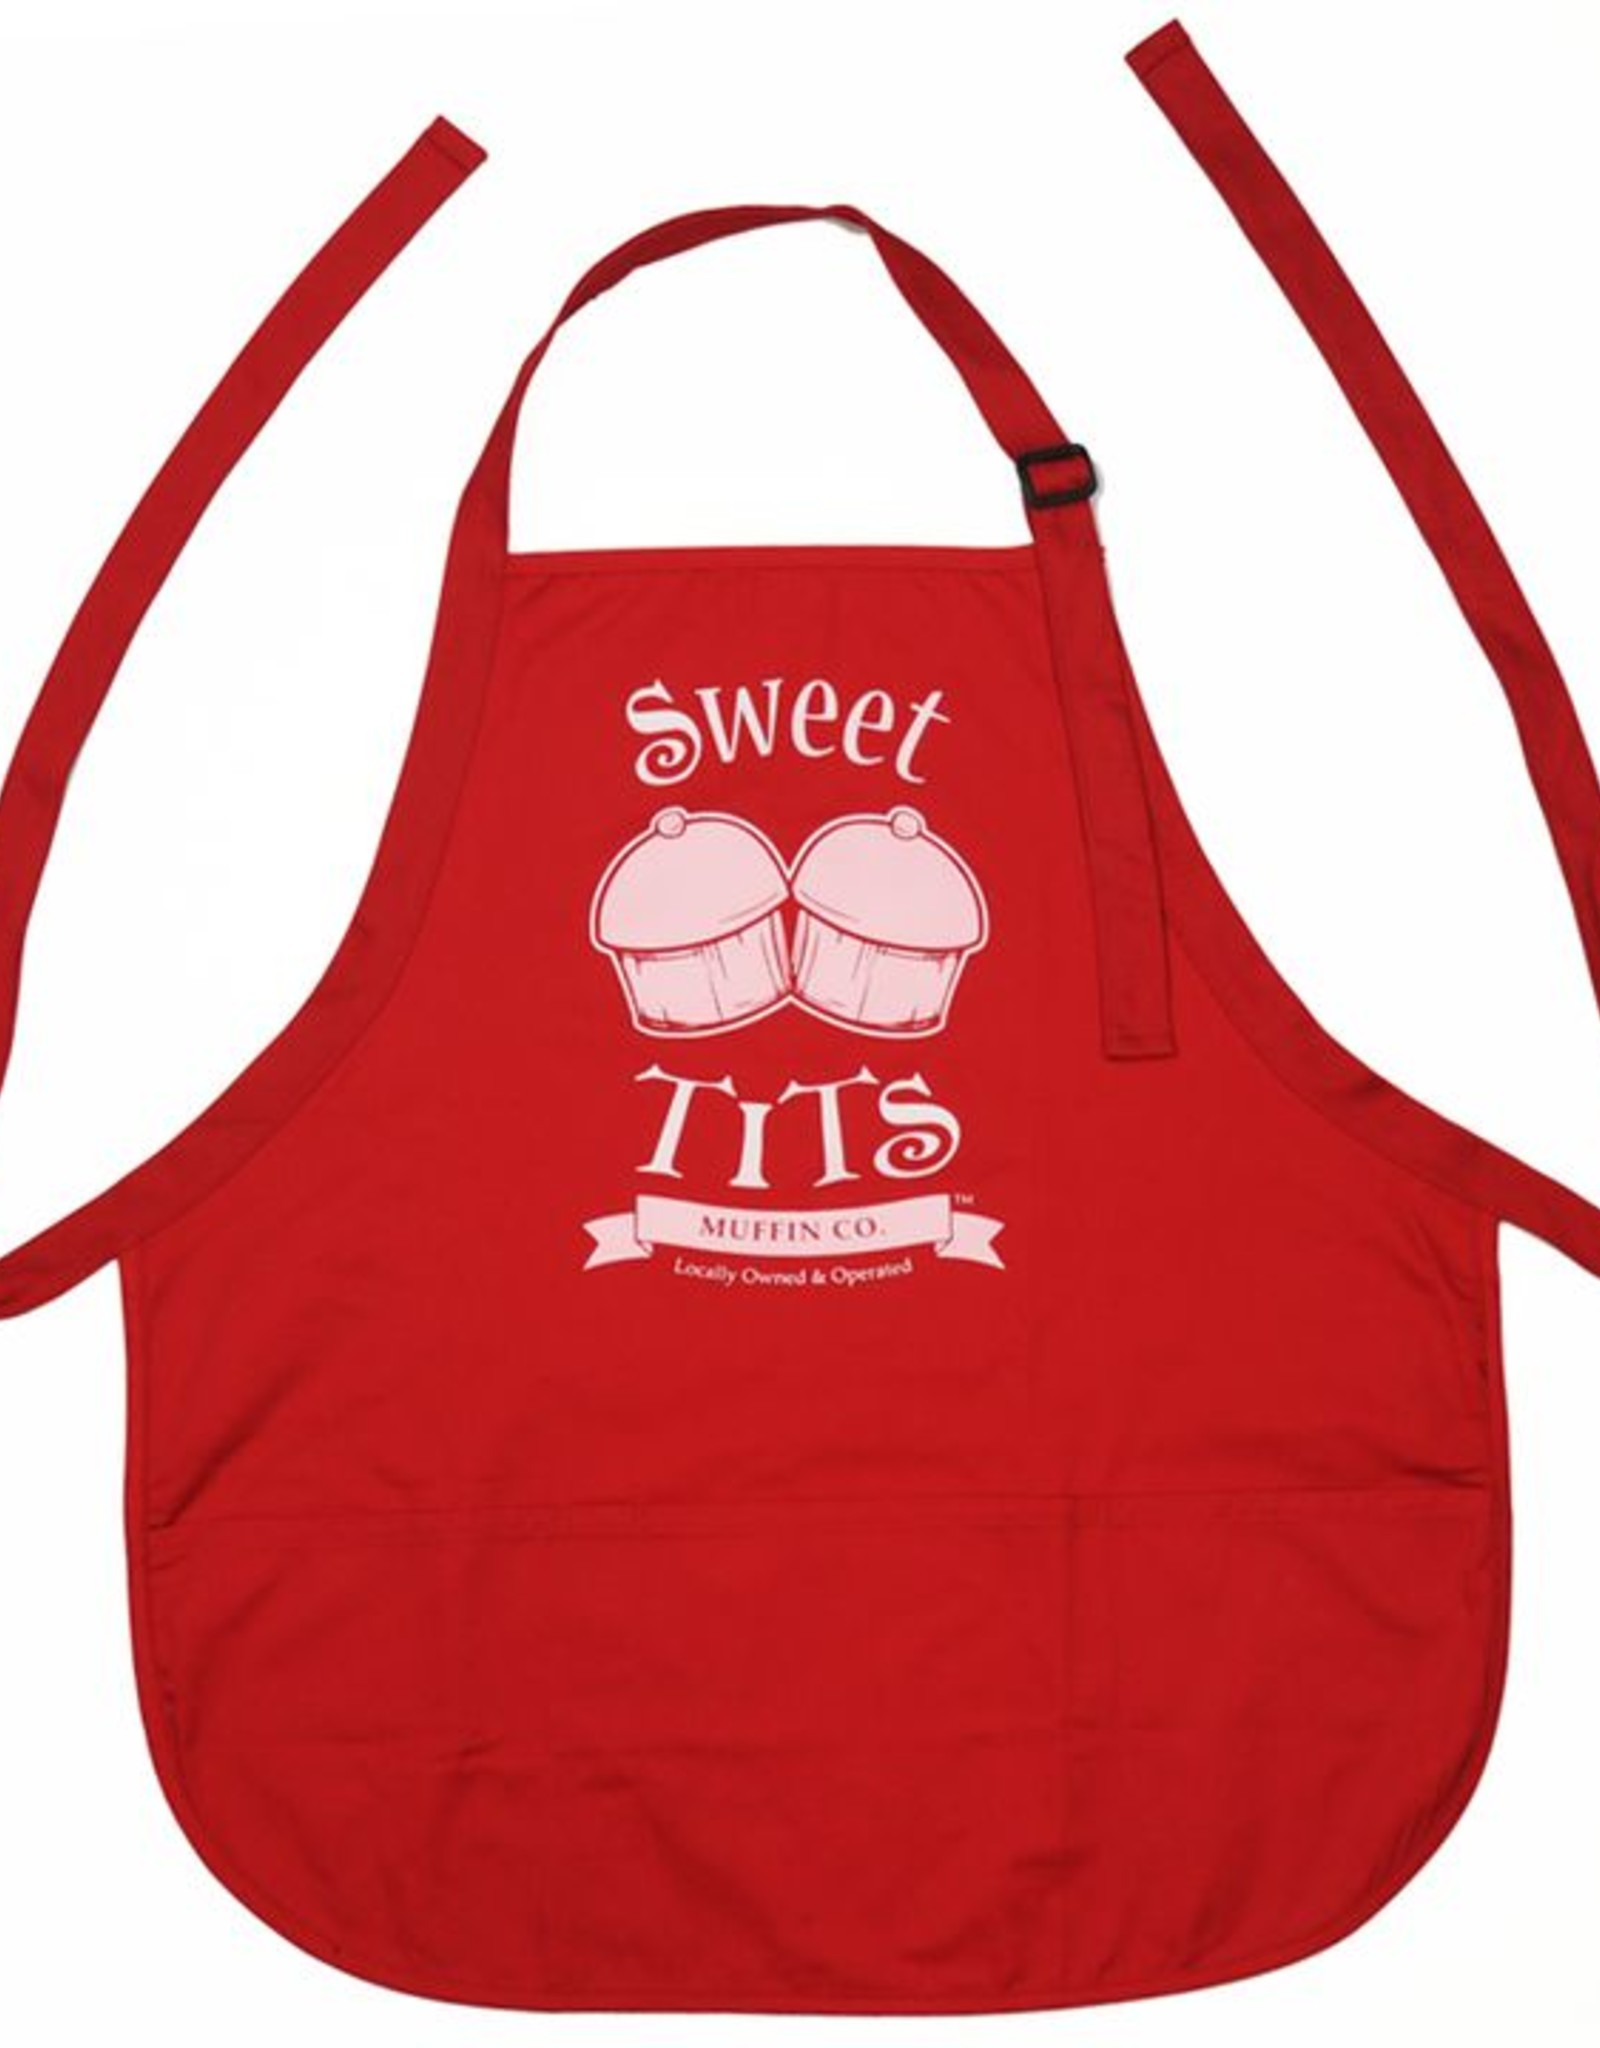 Sweet Tits Muffin Co. Apron (red)